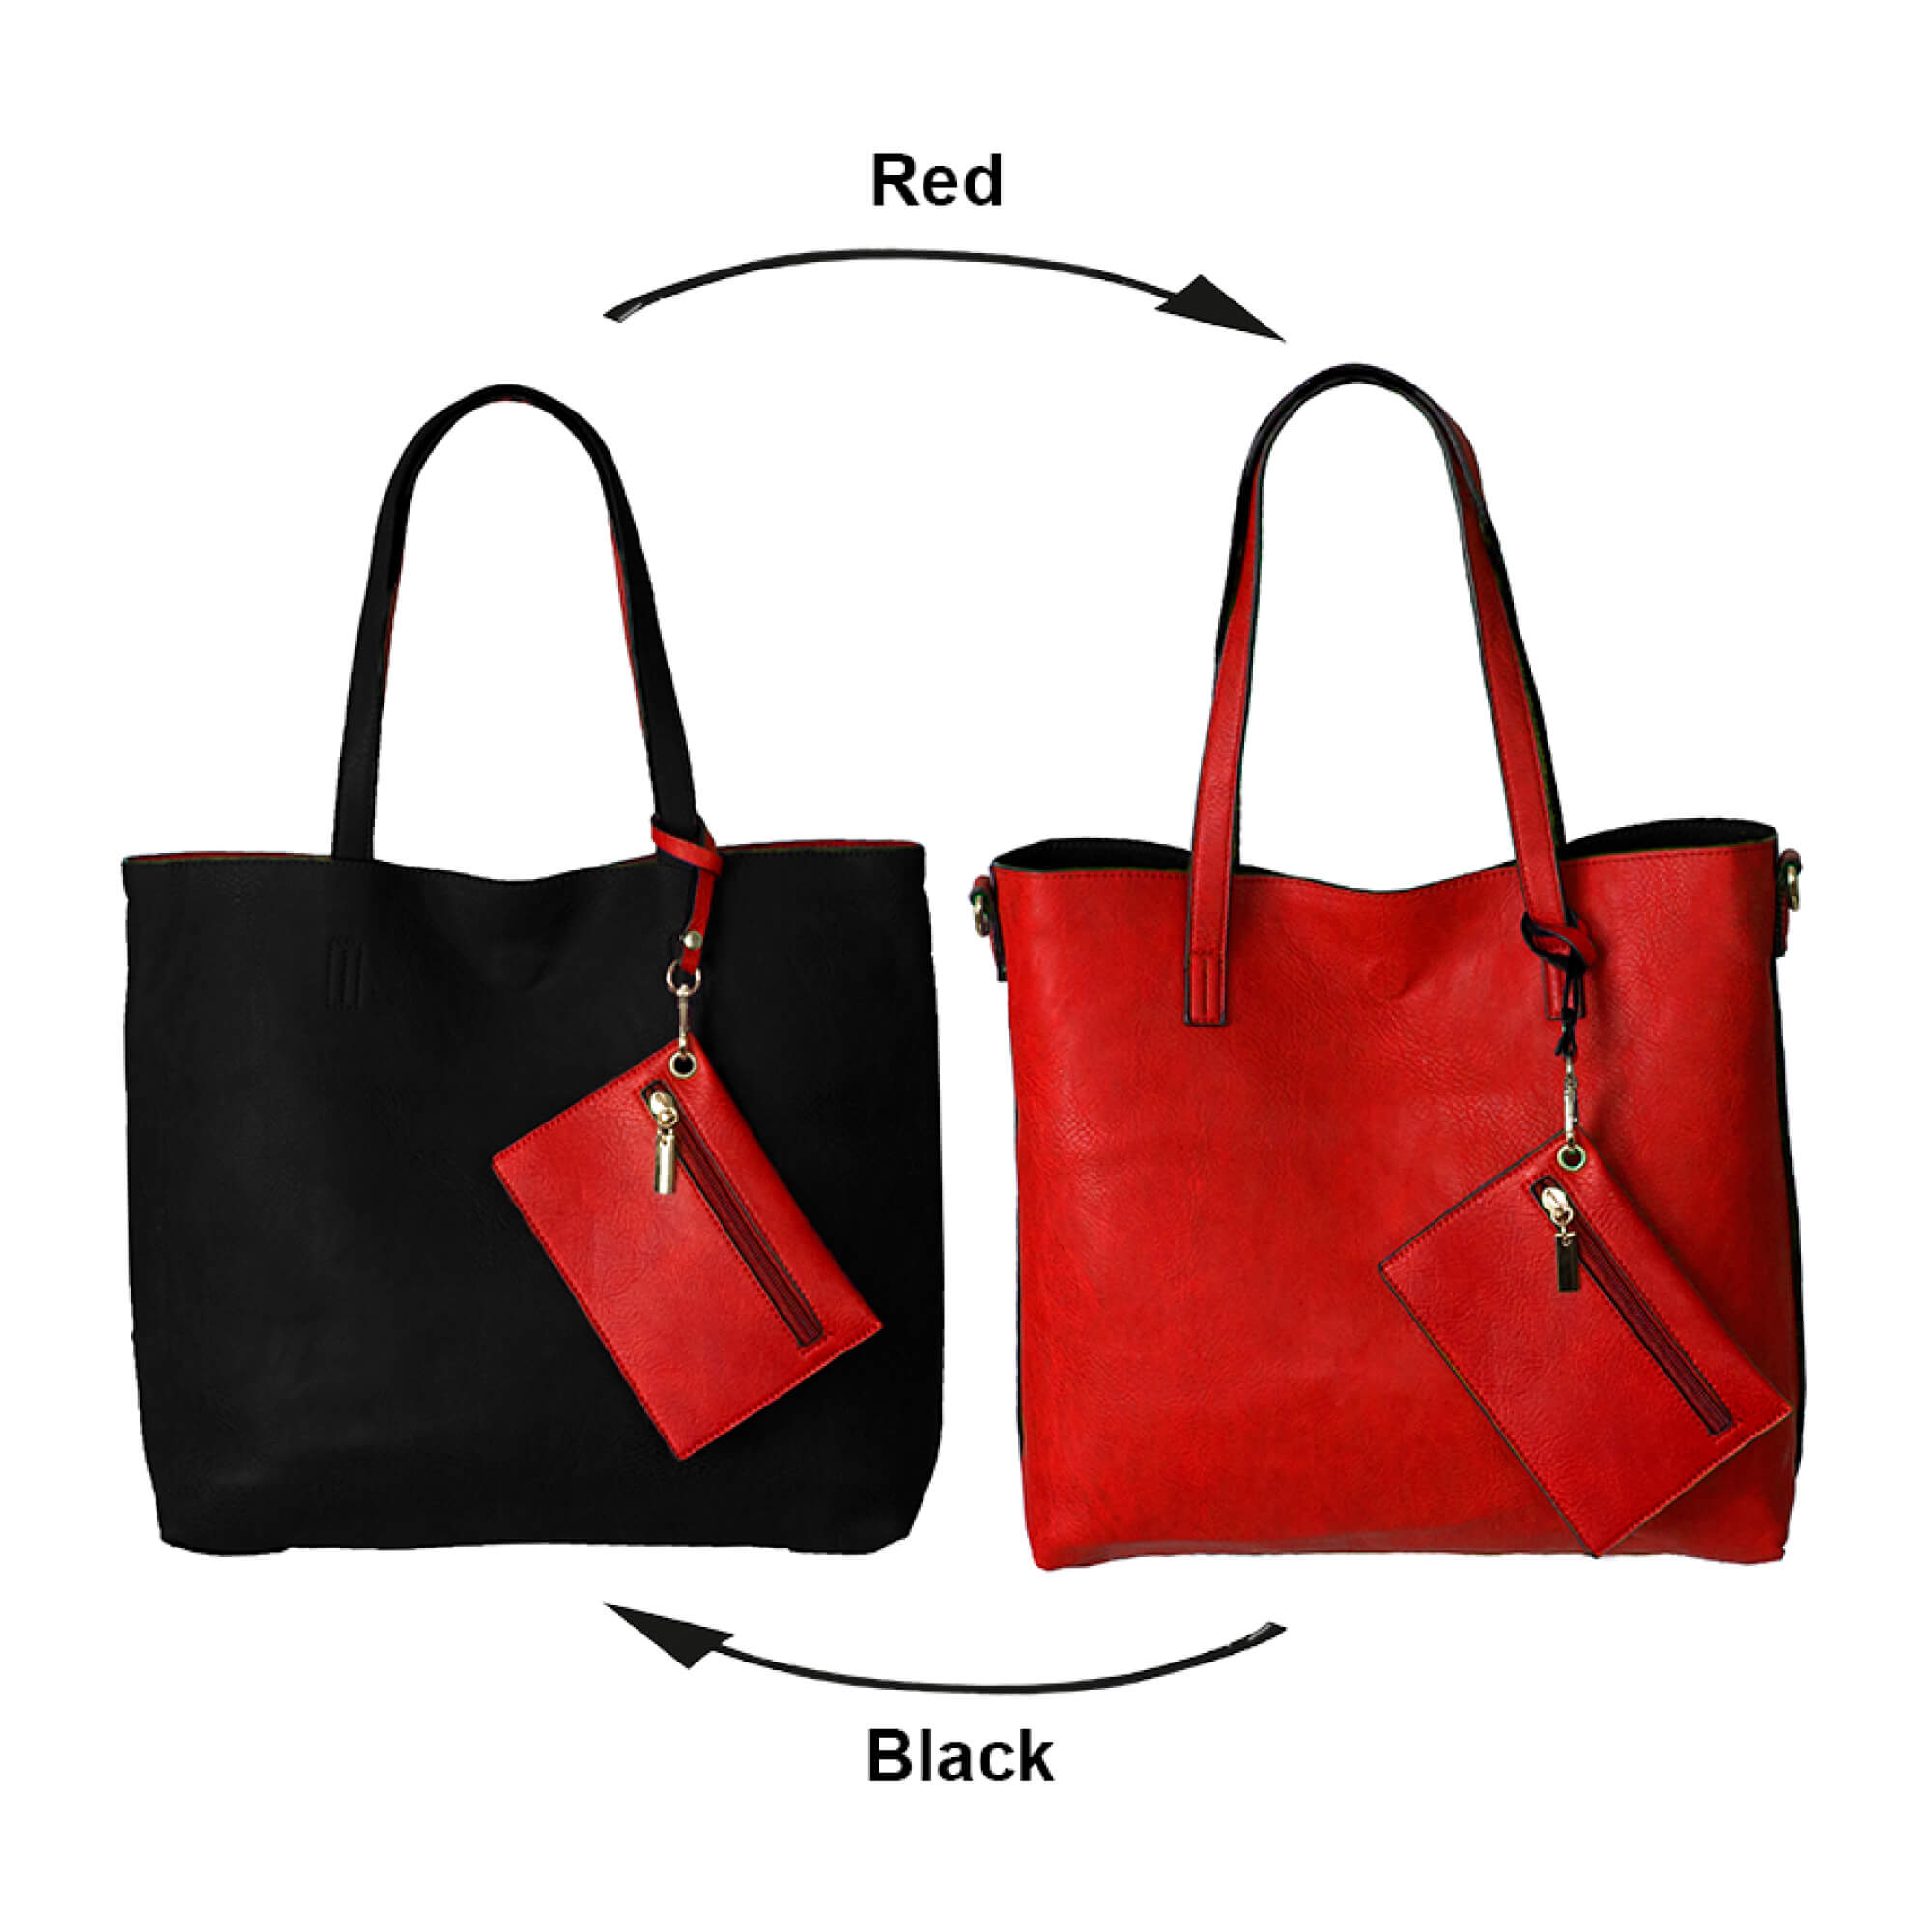 The BergsReversibles bag black and red colours combination.